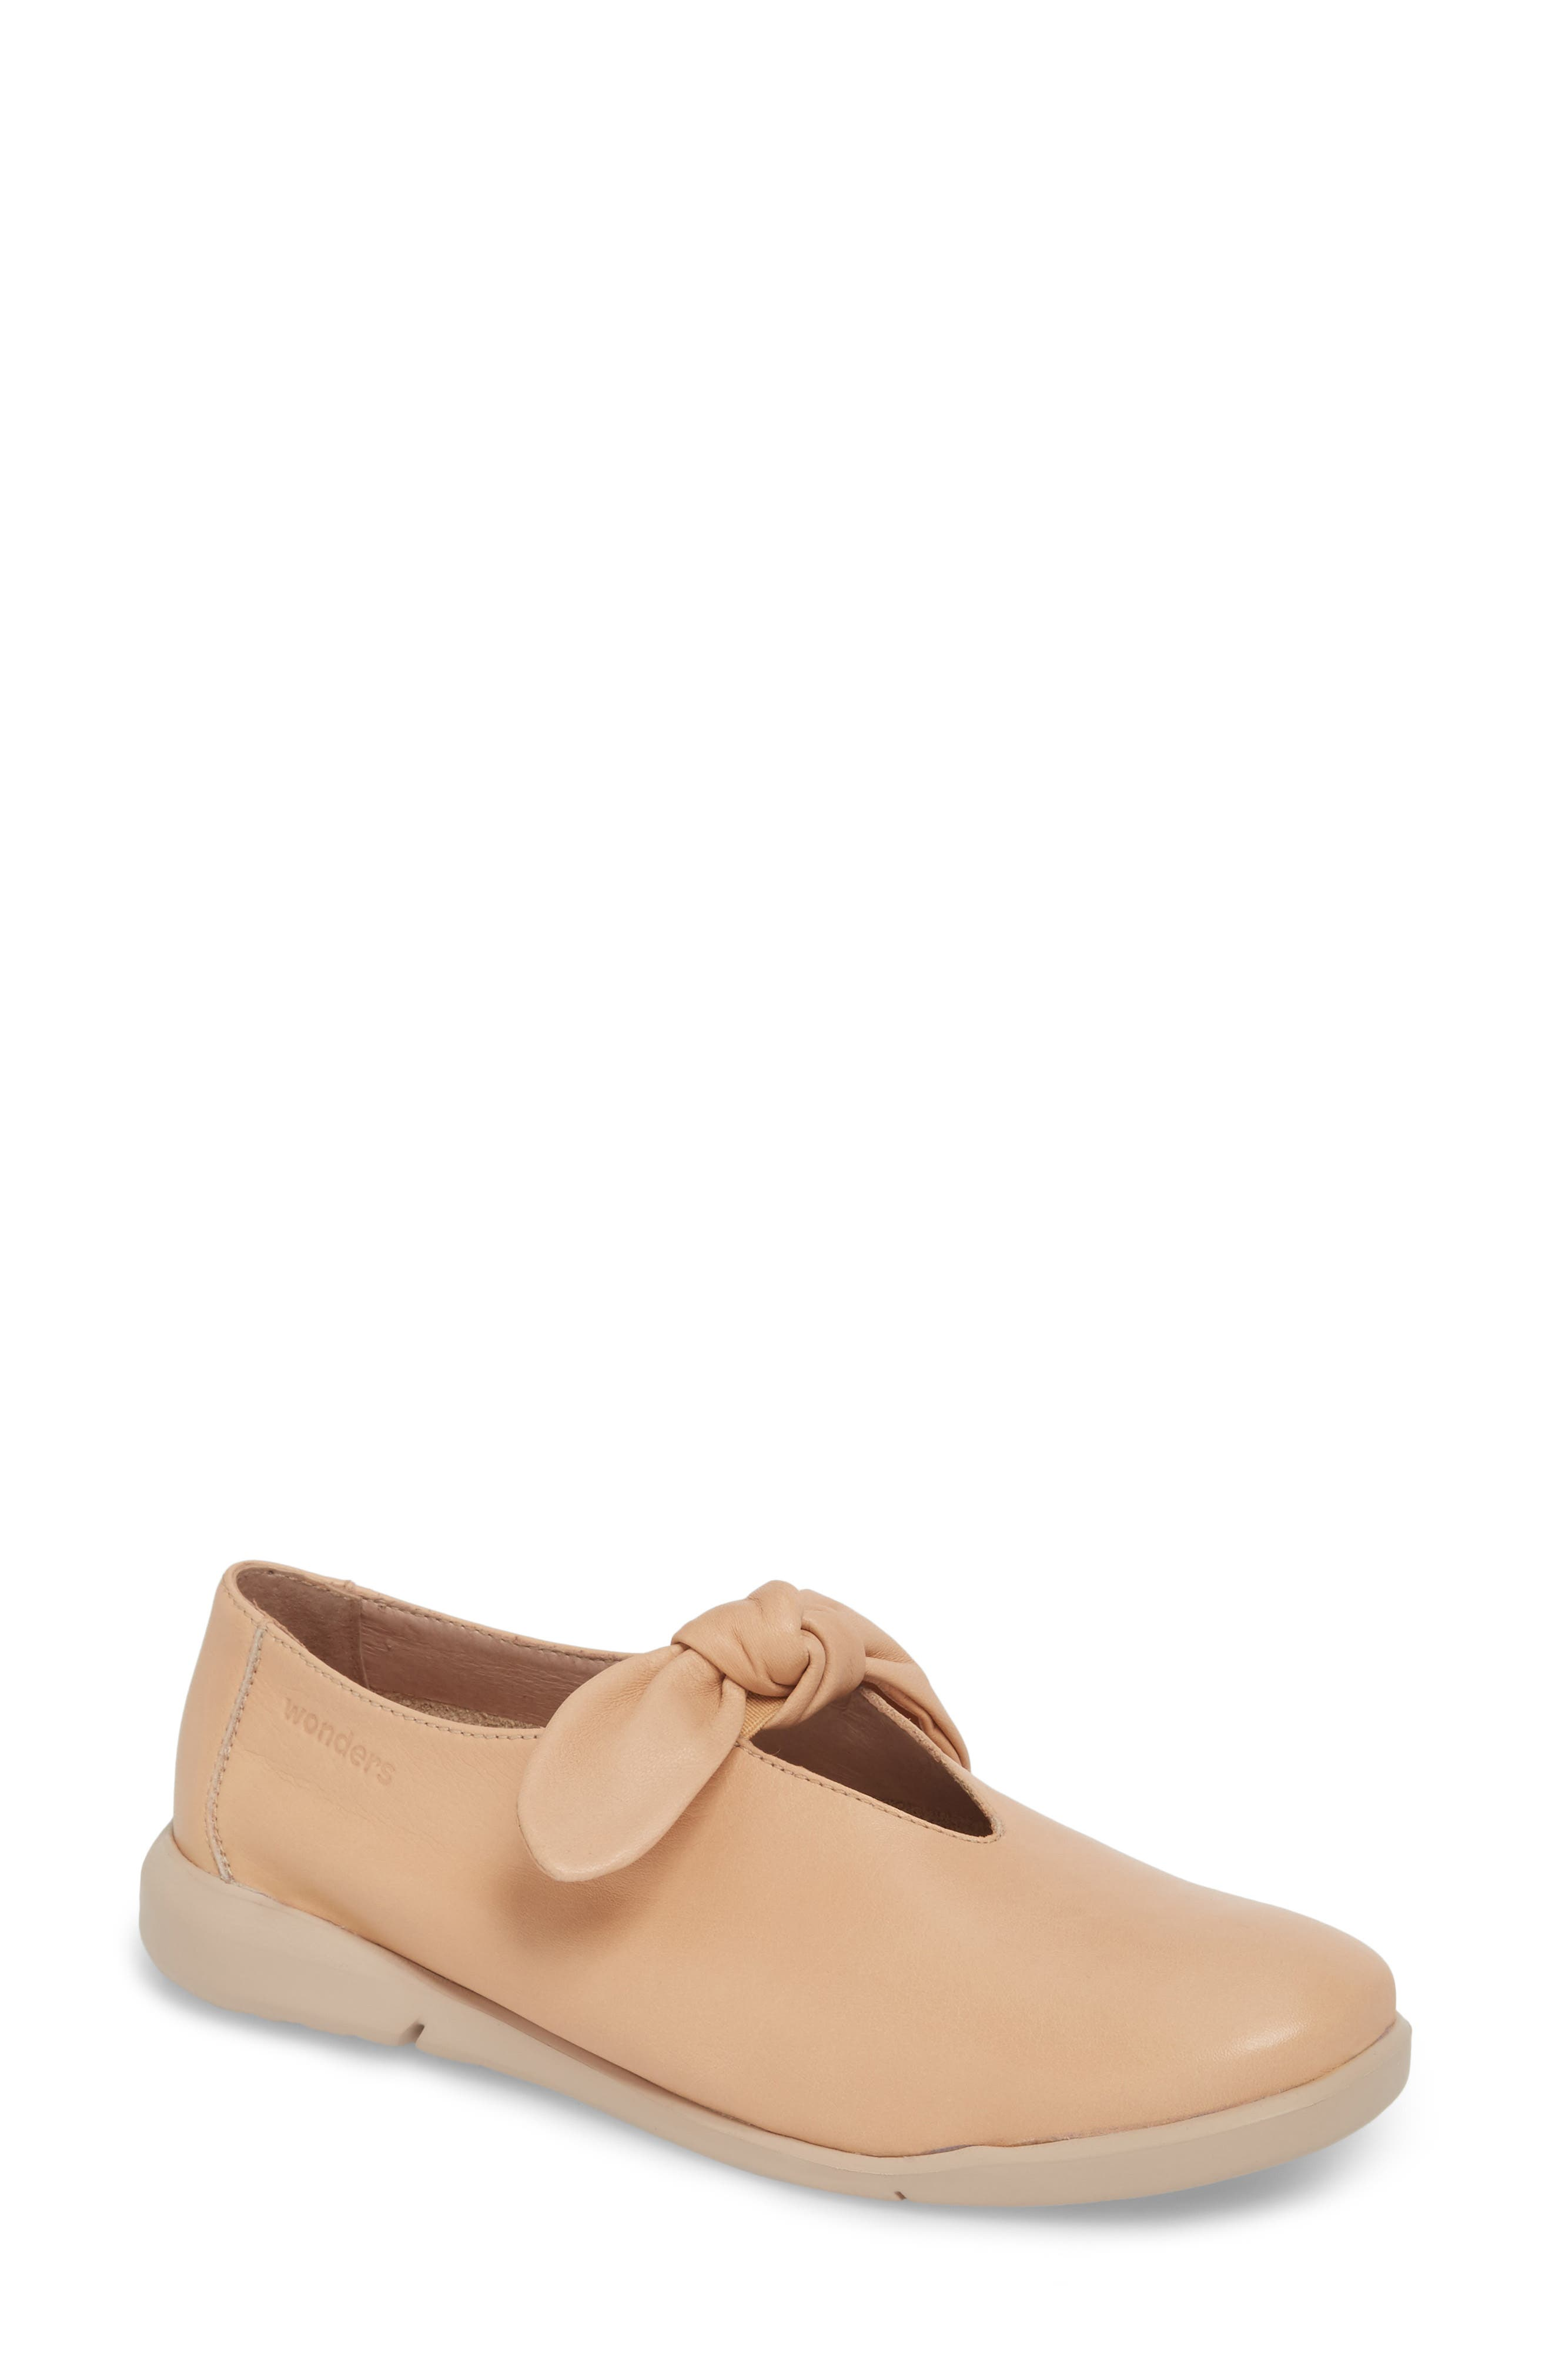 Knotted Mary Jane Flat,                         Main,                         color, PALO BEIGE LEATHER